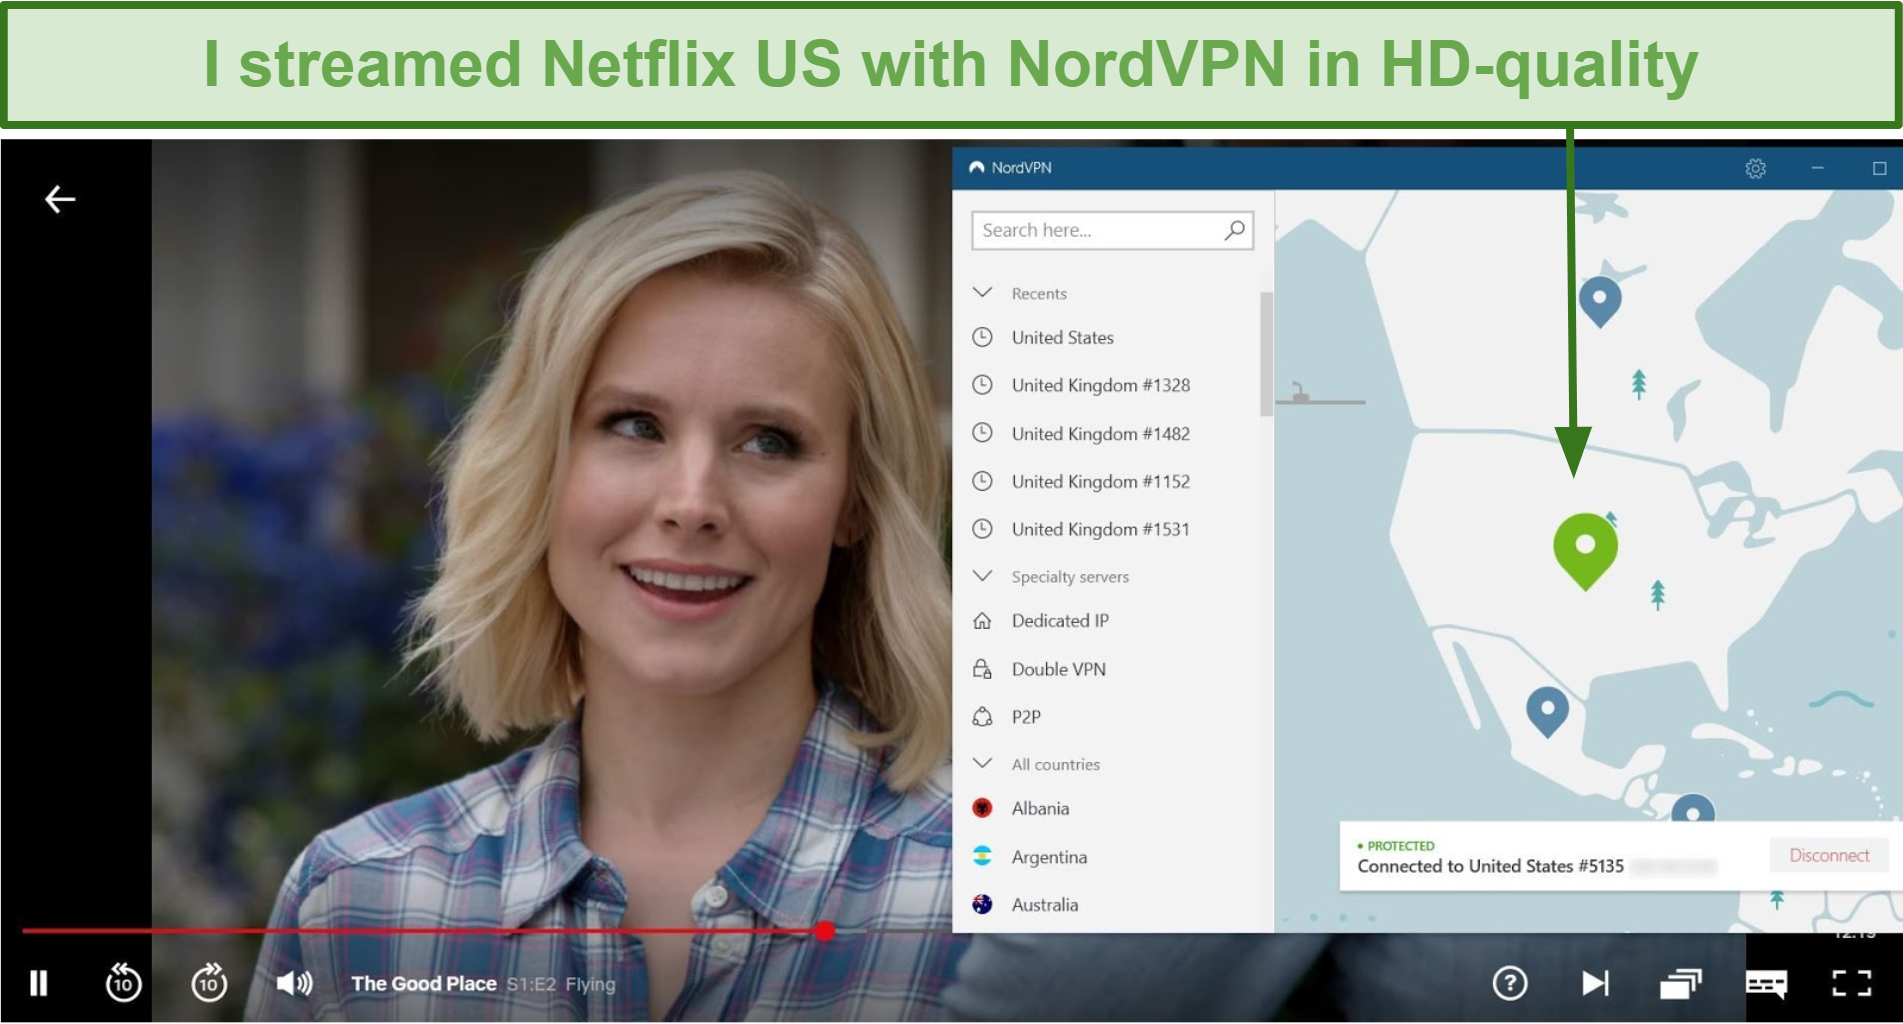 Screenshot of The Good Place streaming on Netflix with NordVPN connected to a US server